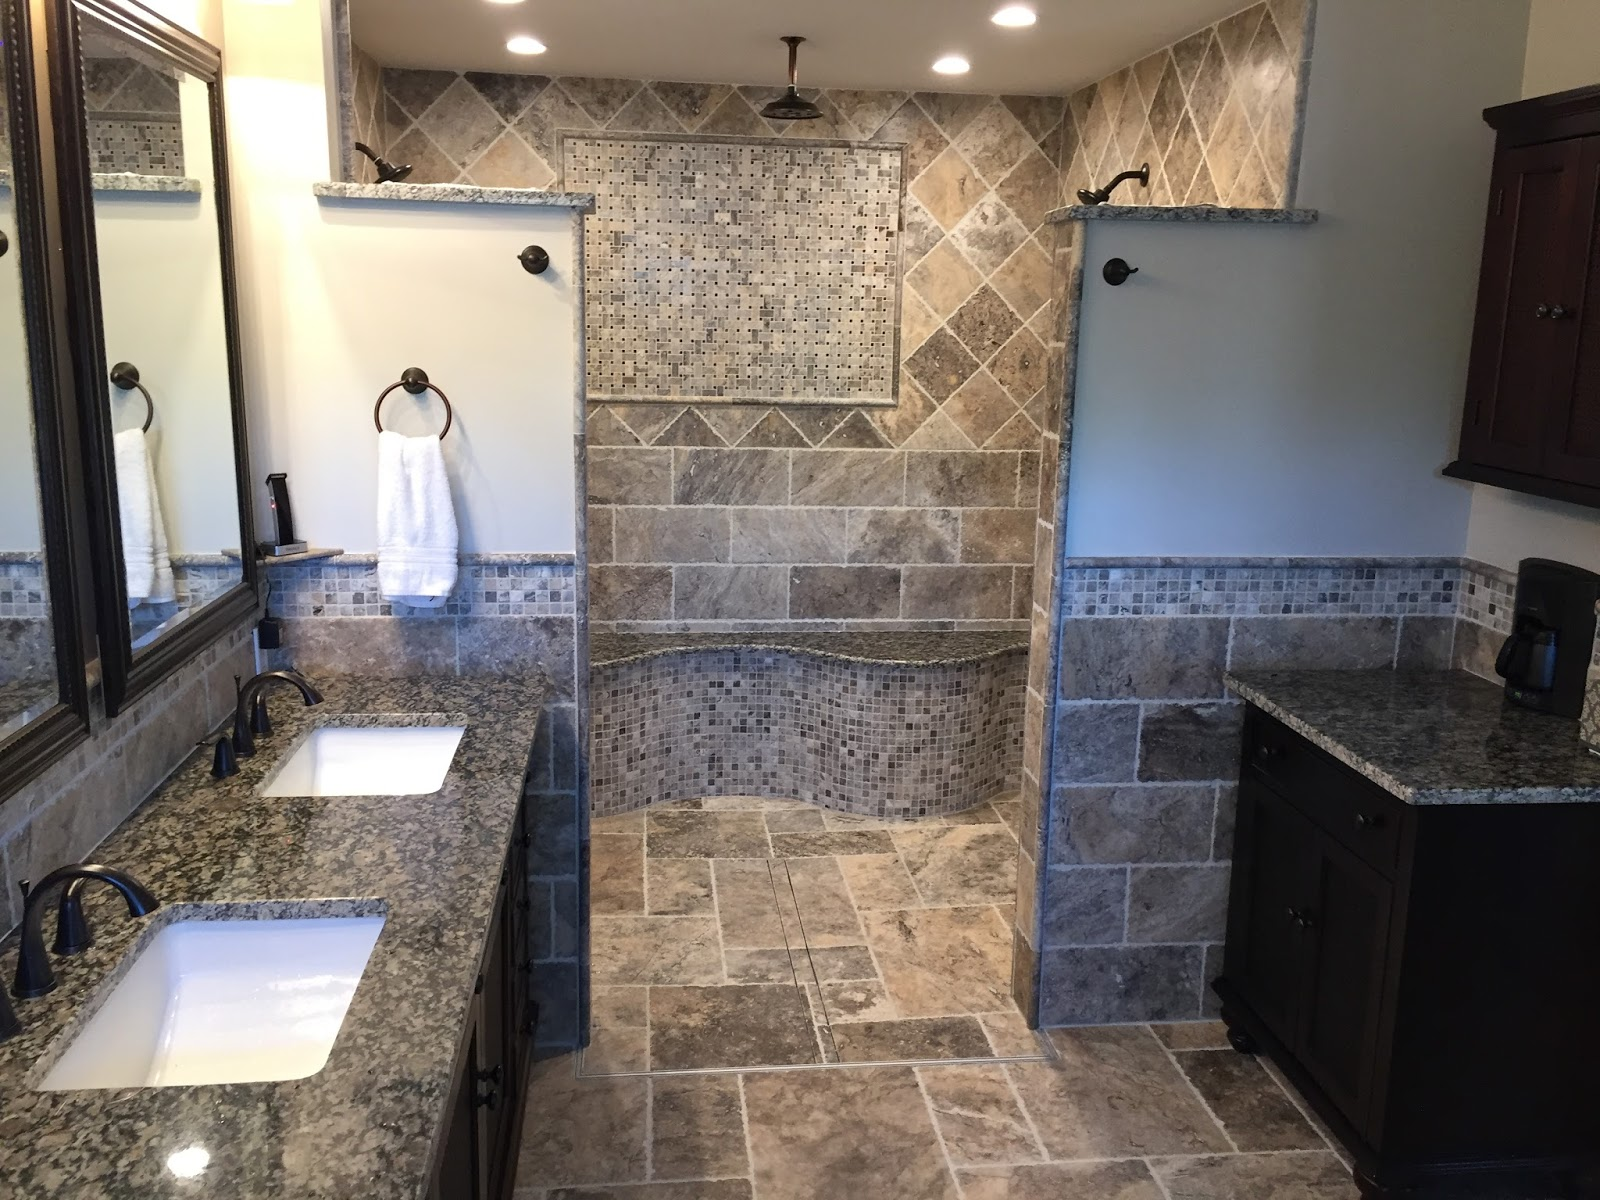 Tile & Stone By Design, LLC ( Kerdi systems ) 770-905-9725